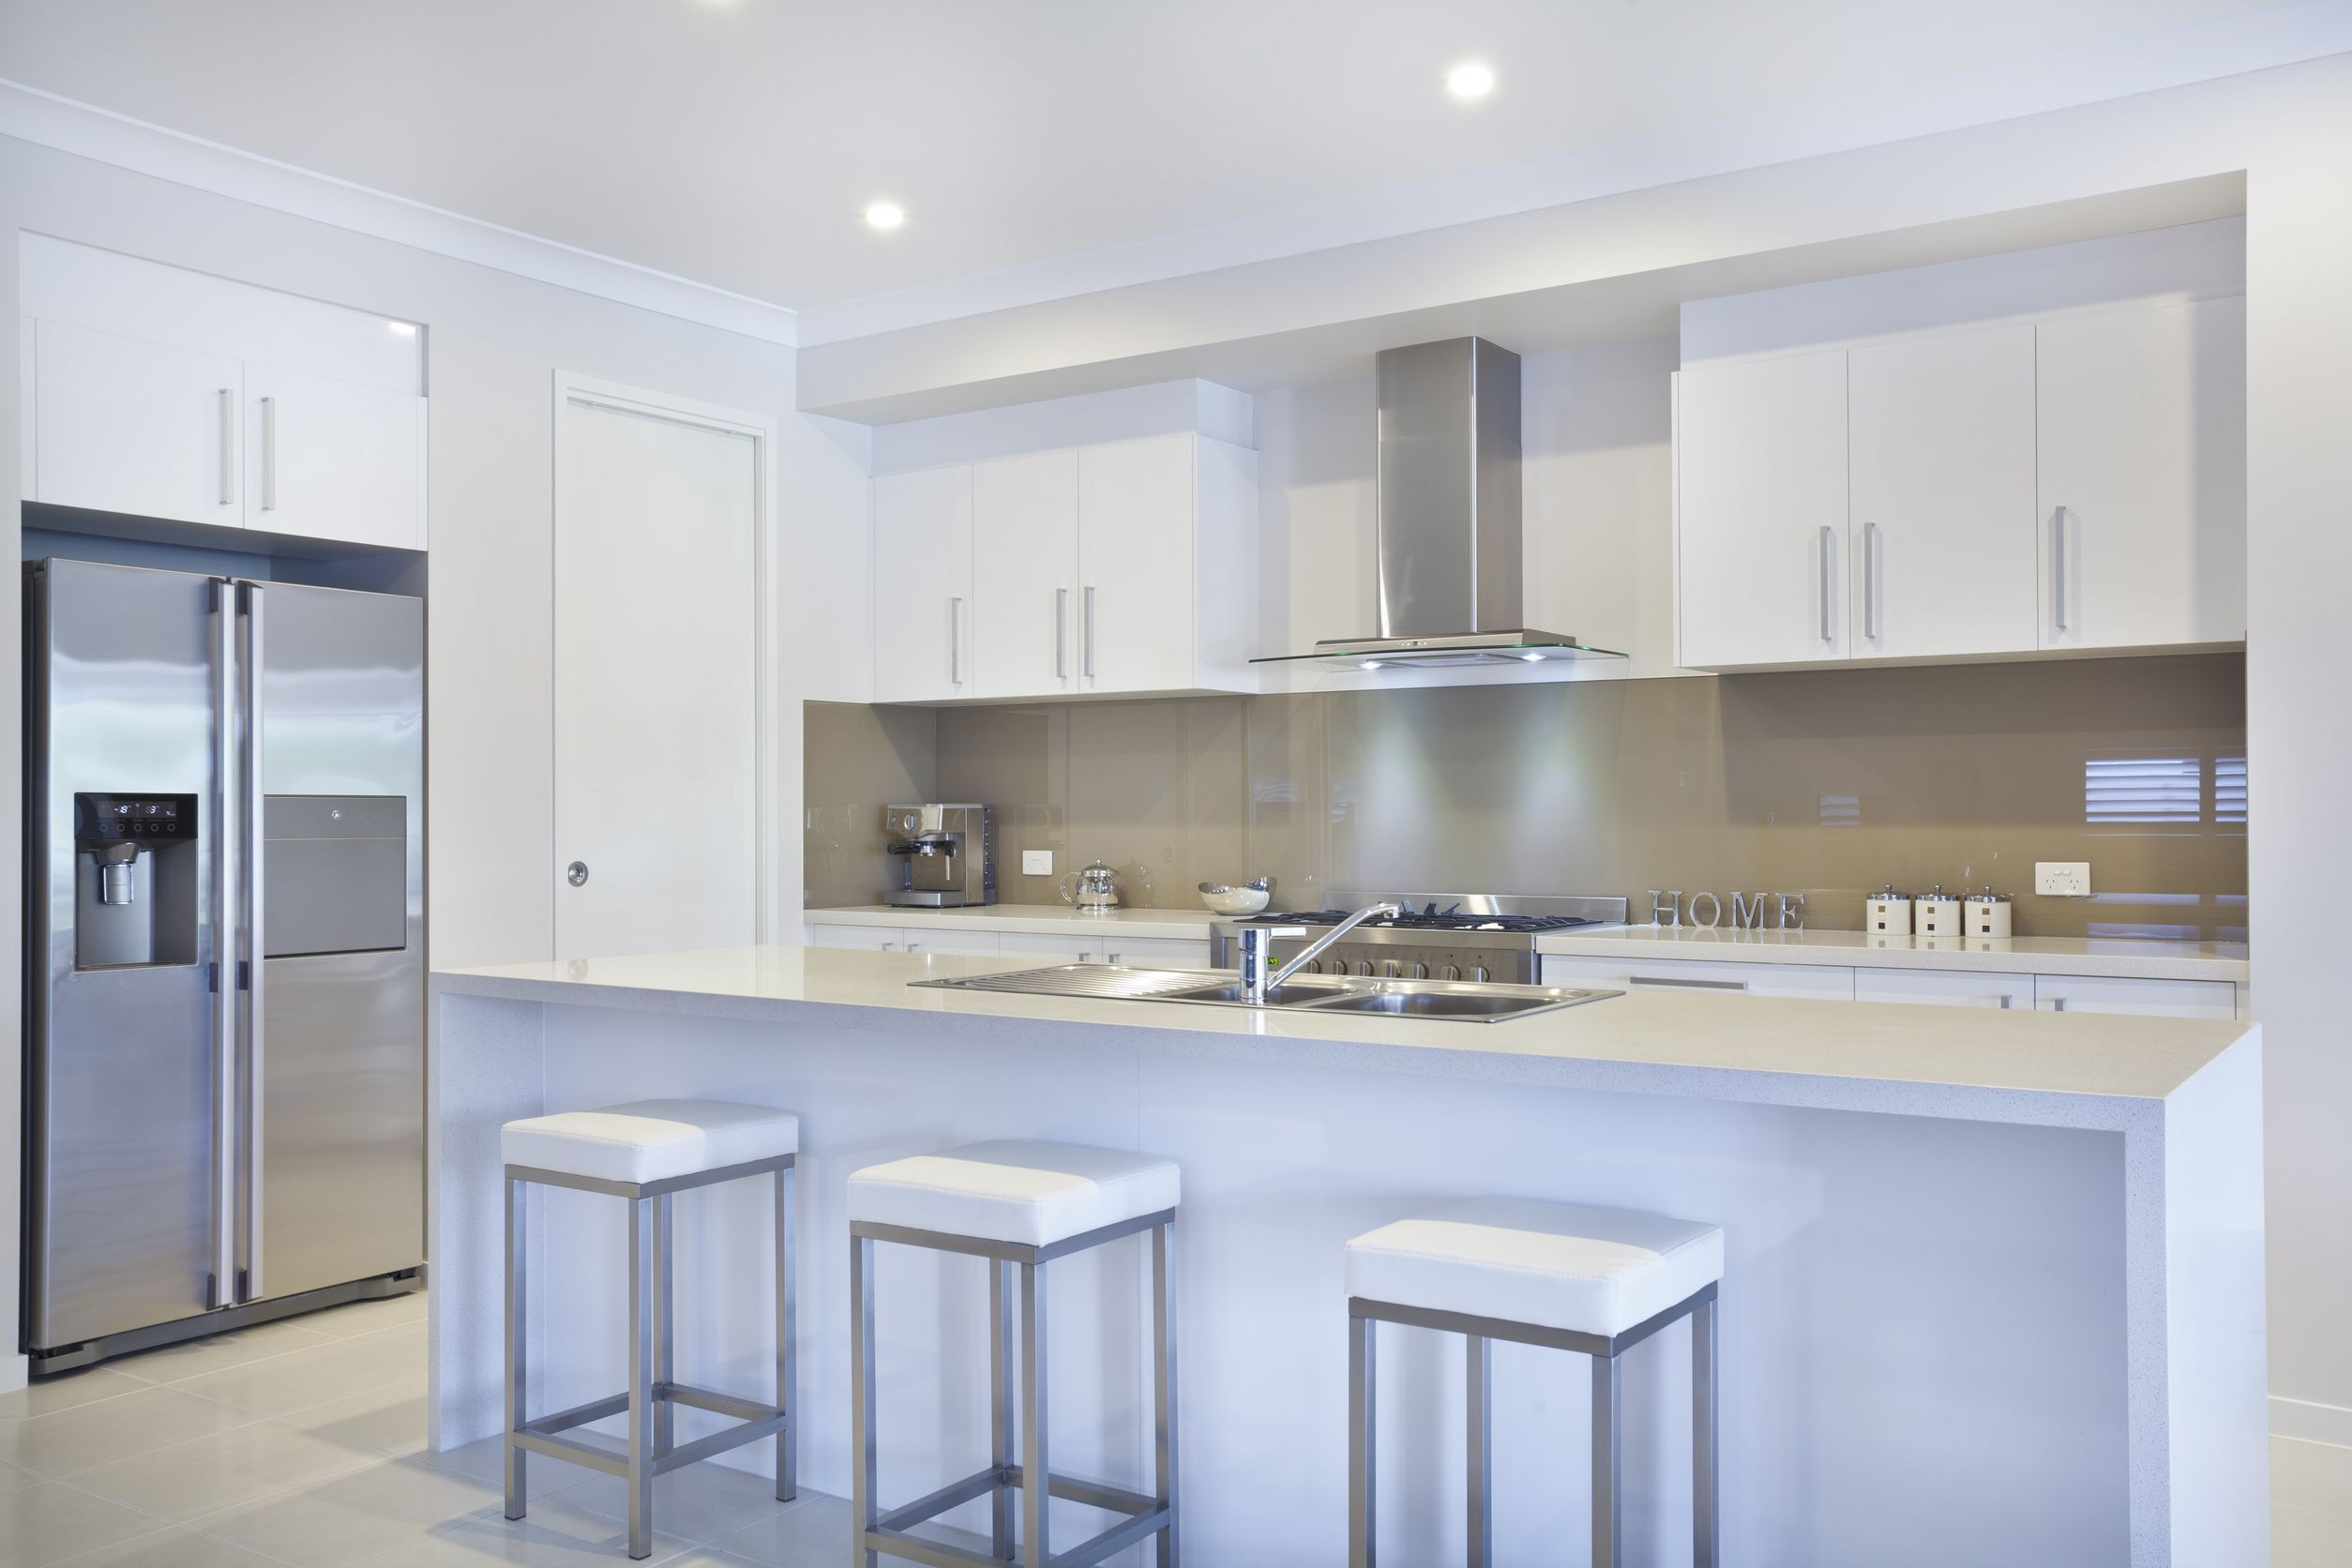 Home - CL Kitchens & Cabinetry